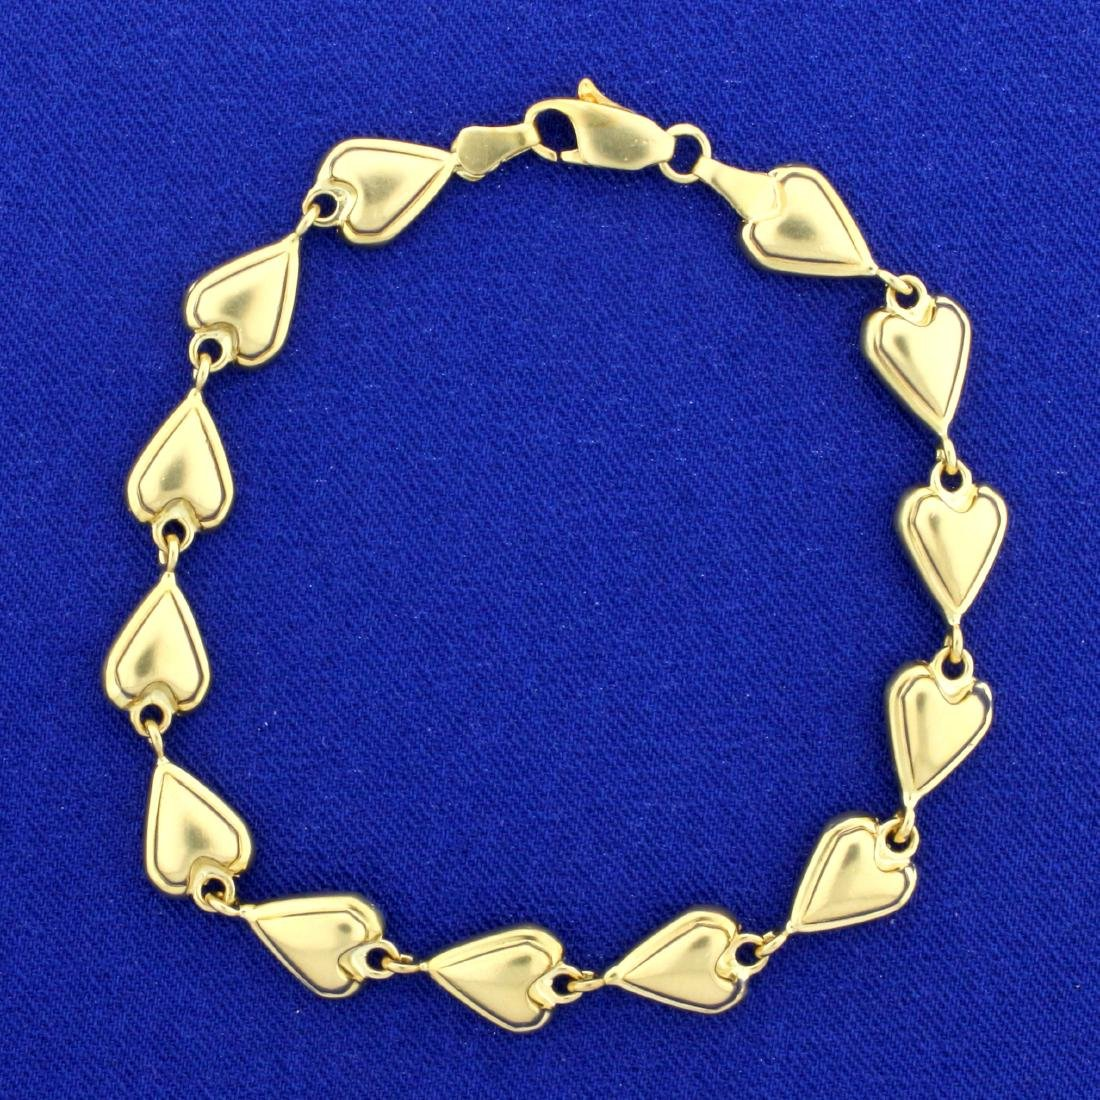 7 1/2 Inch Heart Link Heart Bracelet in 14K Yellow Gold